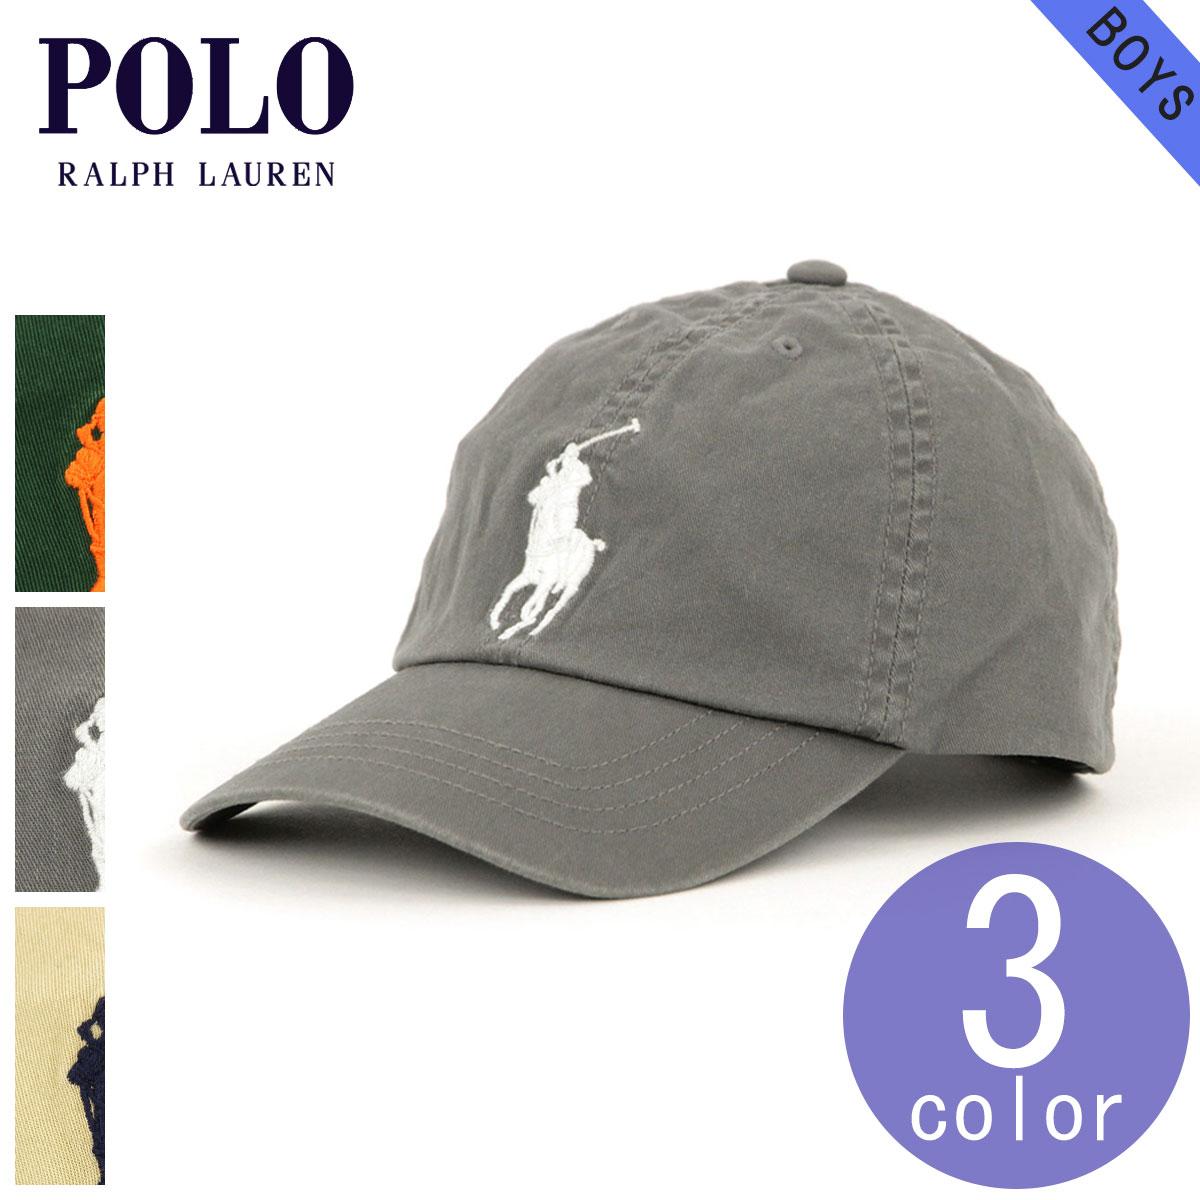 d45c3b06 Rakuten Ichiba shop MIXON: Polo Ralph Lauren kids POLO RALPH LAUREN CHILDREN  regular article Boys hat big pony numbering cap Big Pony Chino Baseball Cap  ...